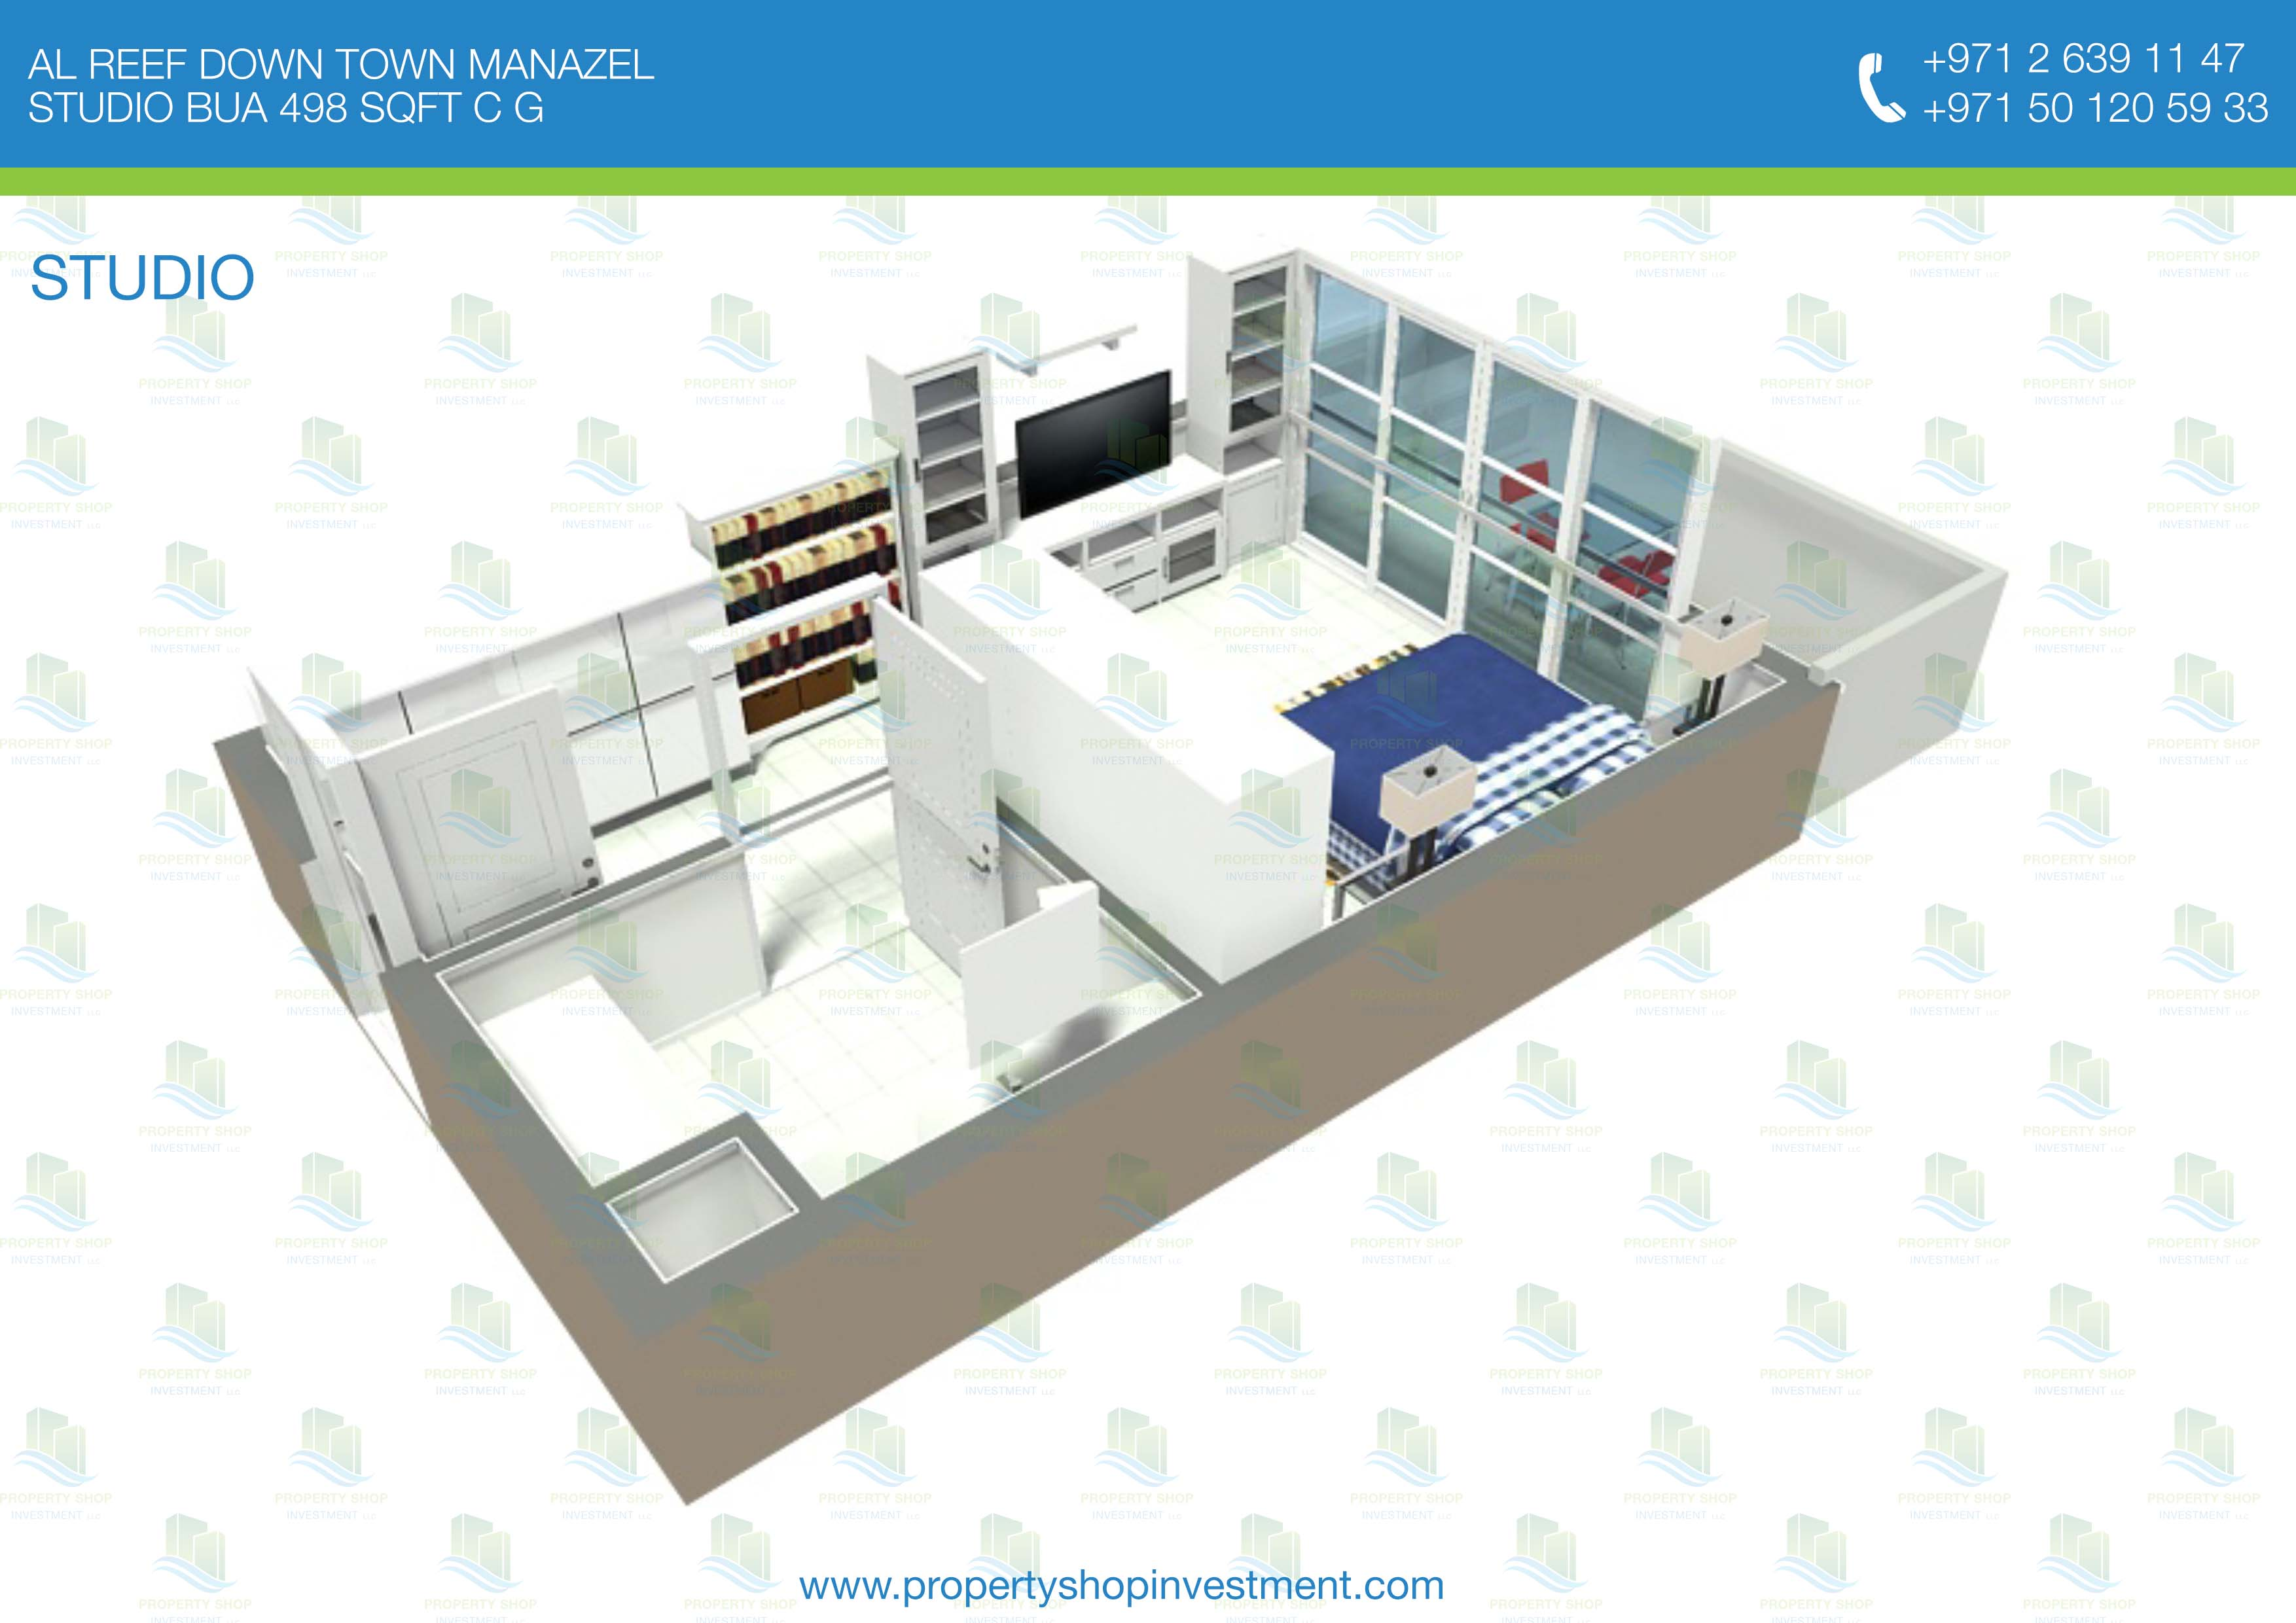 300 Sq Ft Home Plans With Loft likewise 2 Bhk East Facing House Plan further 3d Architectural Rendering Services India likewise 1 additionally Palm Springs Floor Plans. on 3d studio apartment floor plan